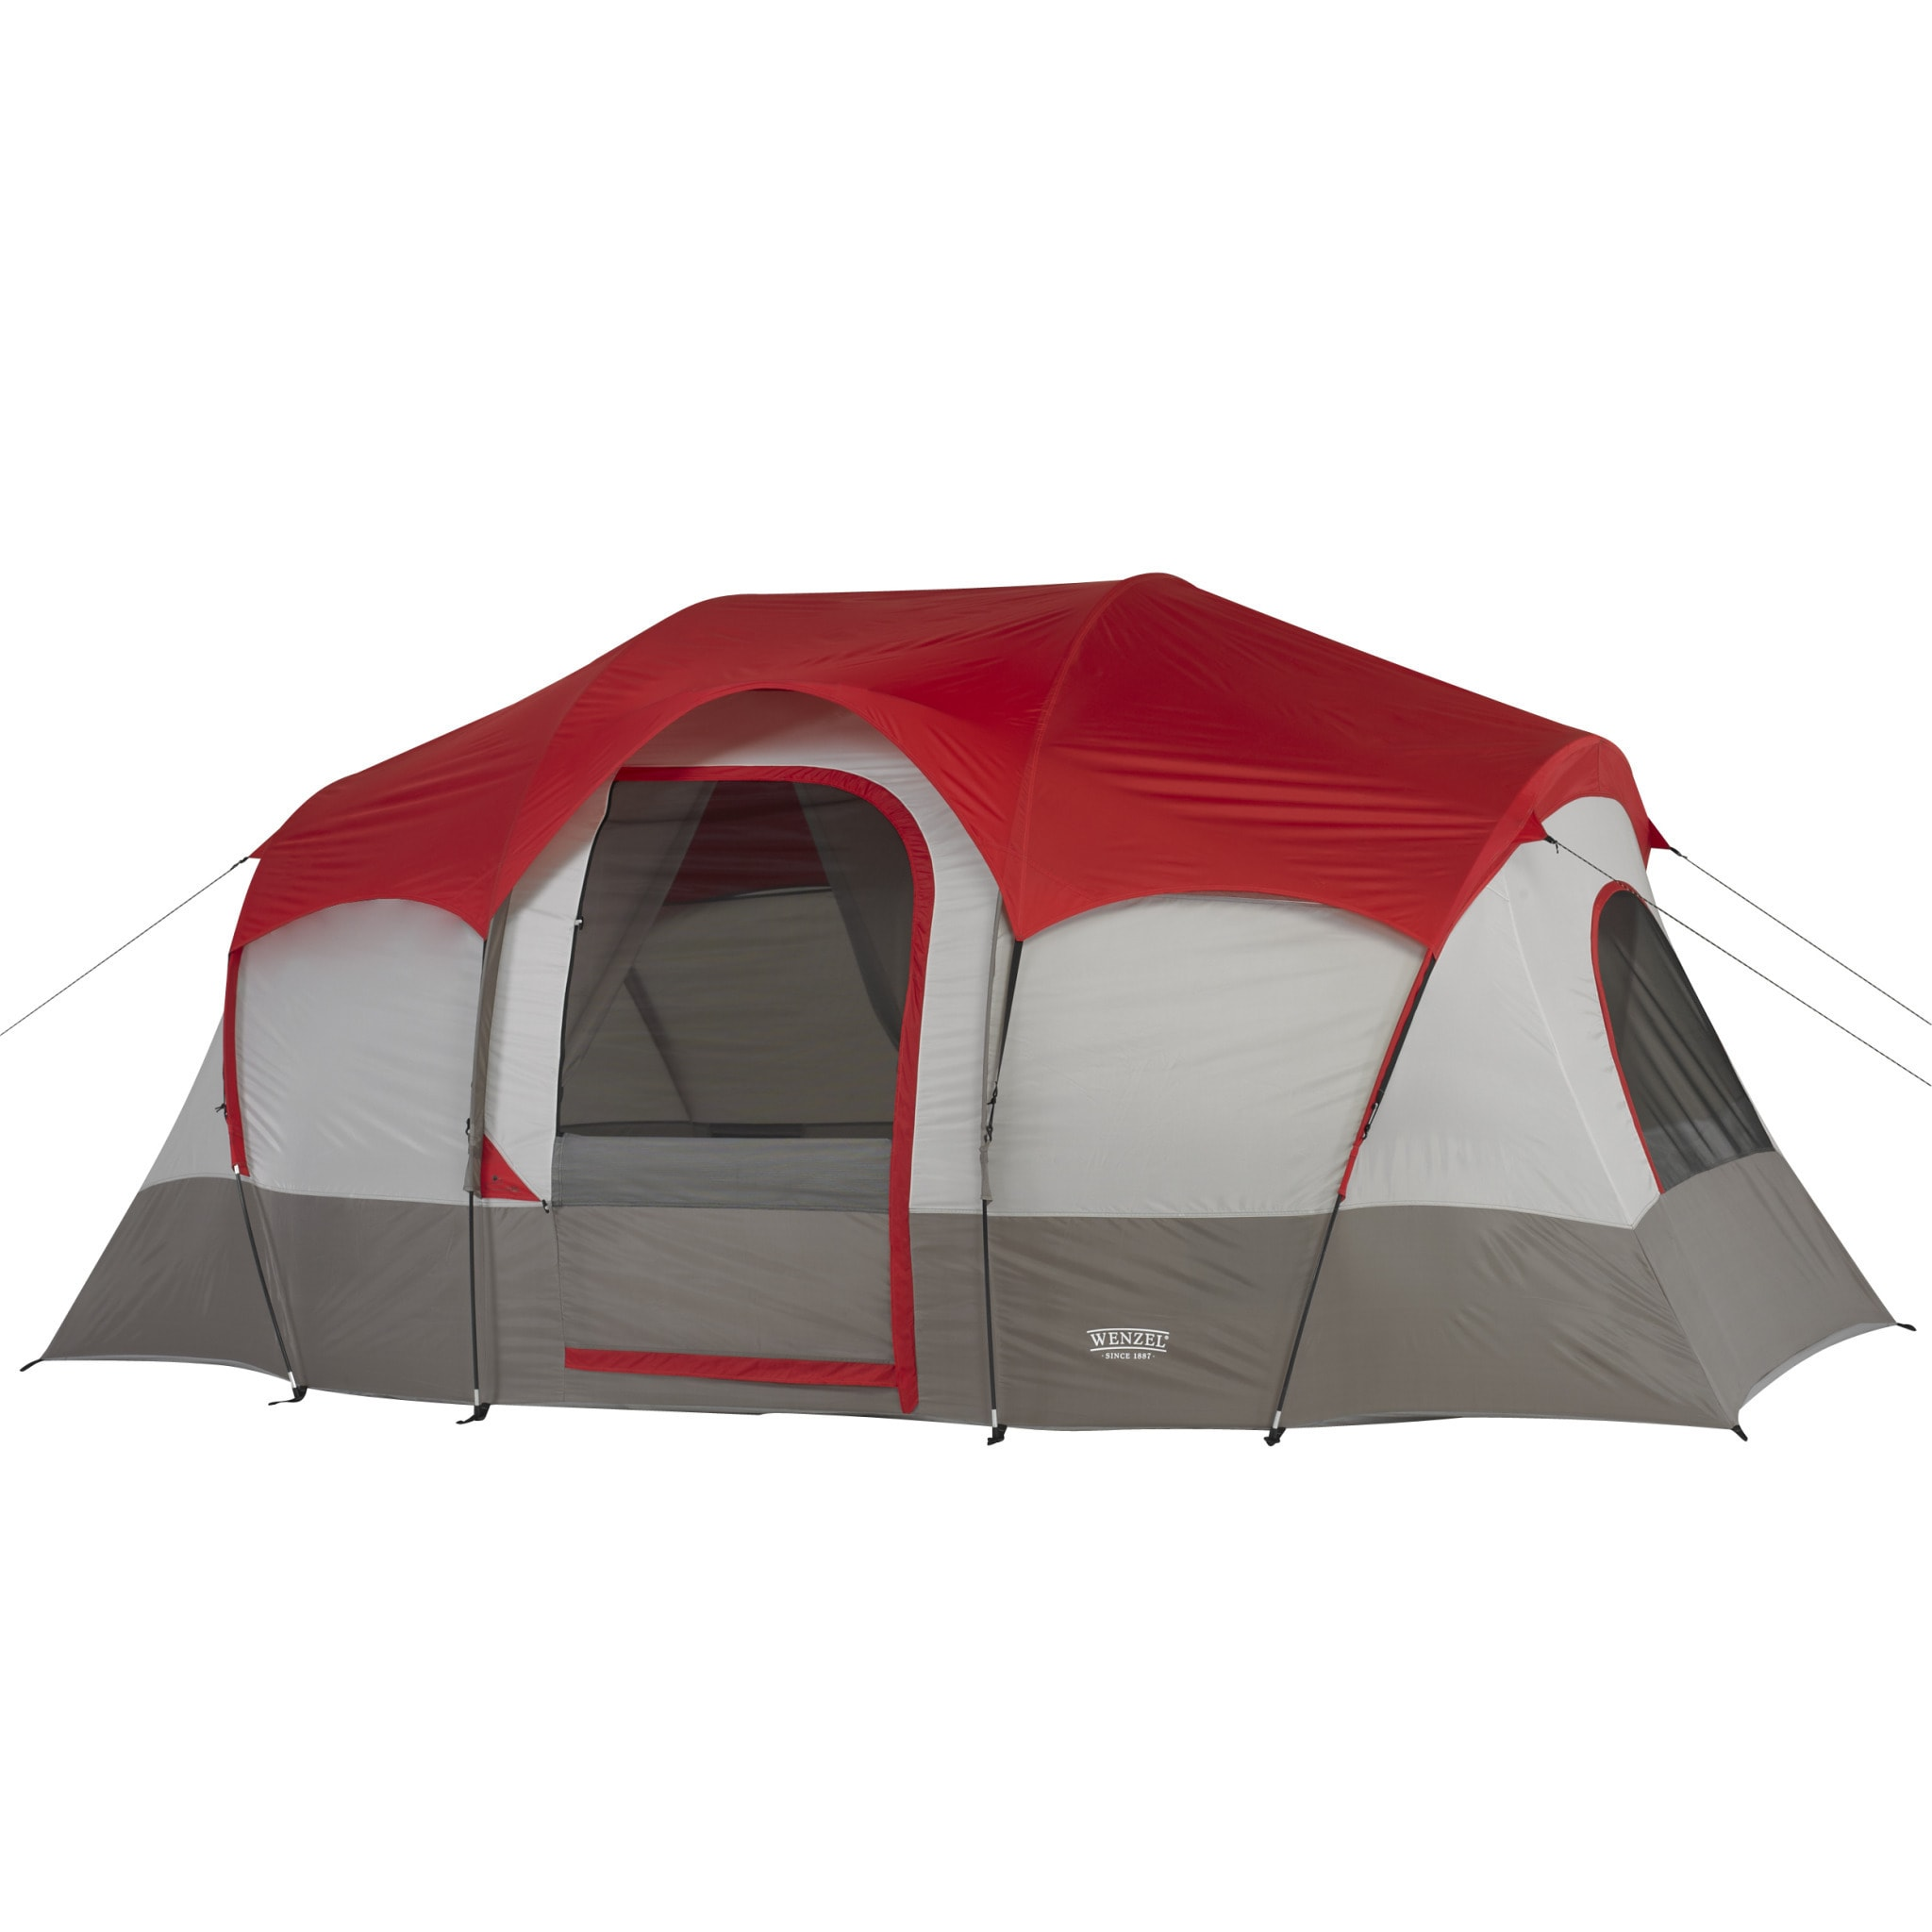 Wenzel Blue Ridge 7-person 2-room Tent - Free Shipping Today - Overstock.com - 16758174  sc 1 st  Overstock.com : tent with built in air mattress - memphite.com